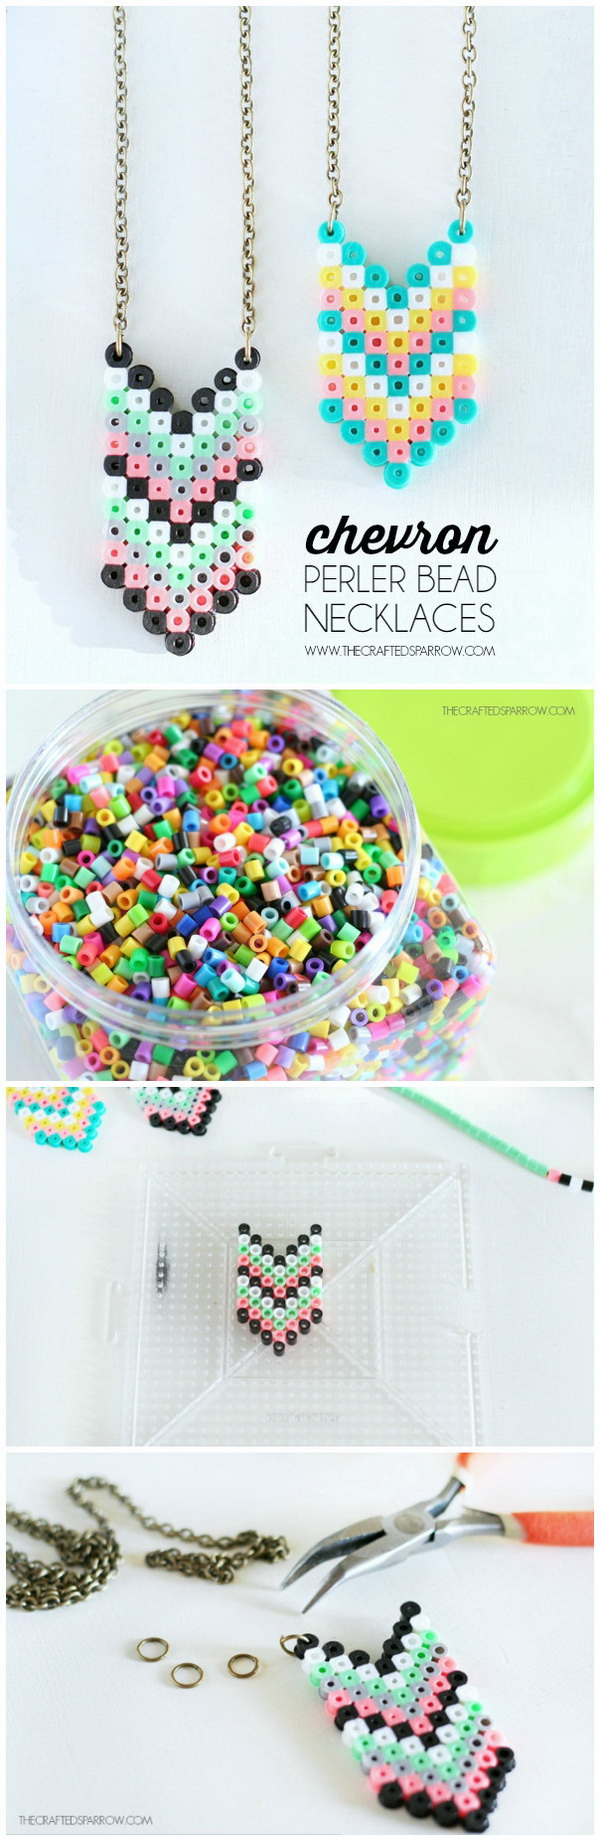 Easy Kids Craft Ideas: Chevron Perler Bead Necklaces.